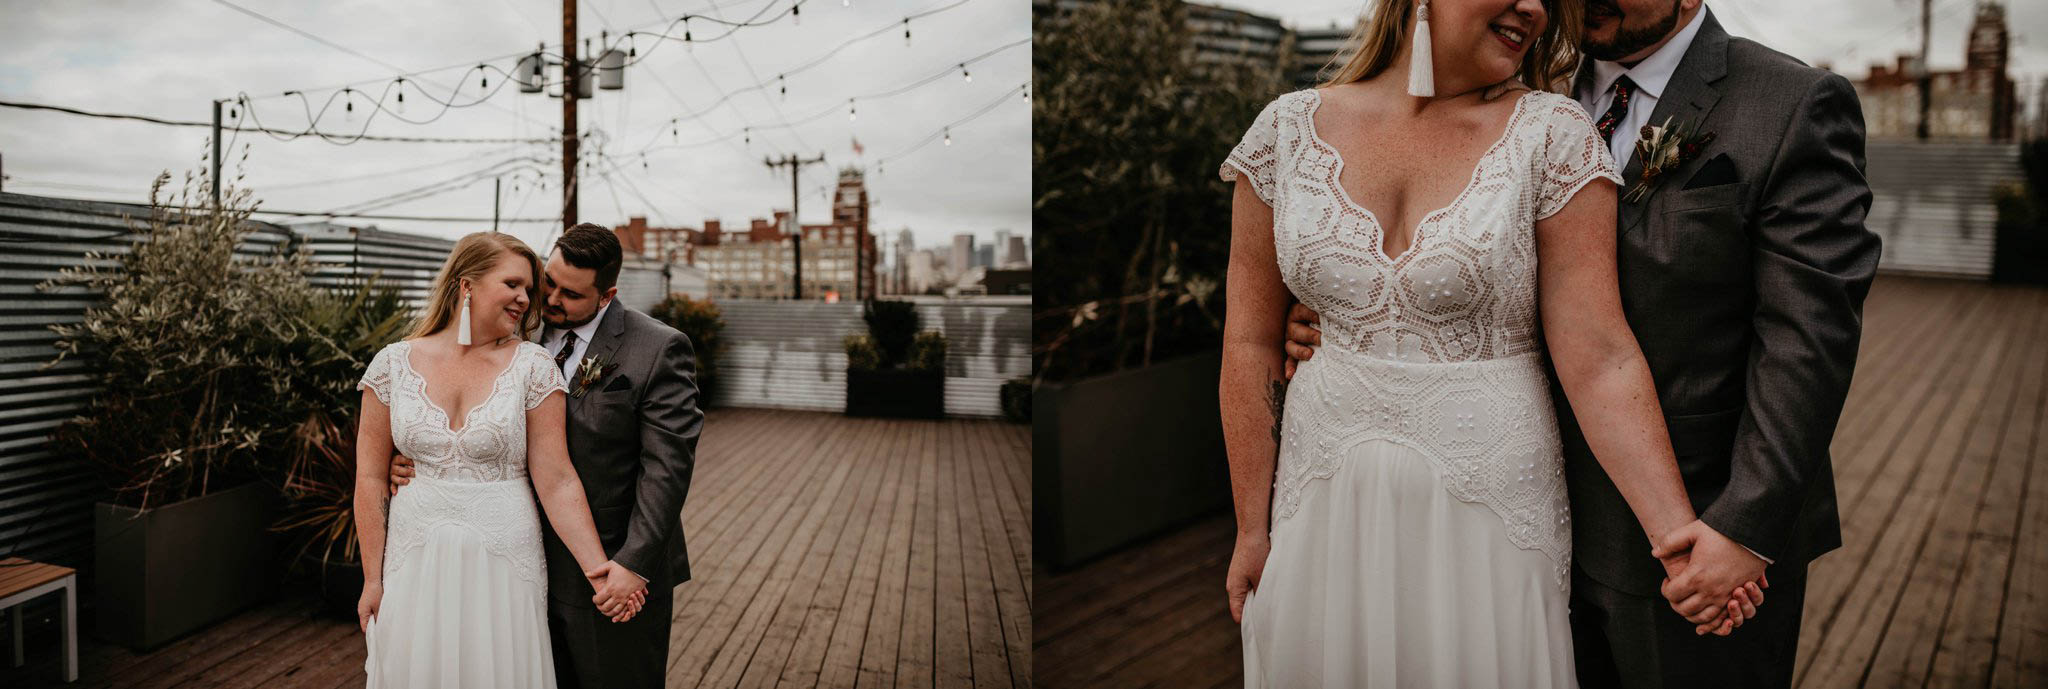 gwen-andrew-within-sodo-downtown-seattle-wedding-photographer-winter-32.jpg